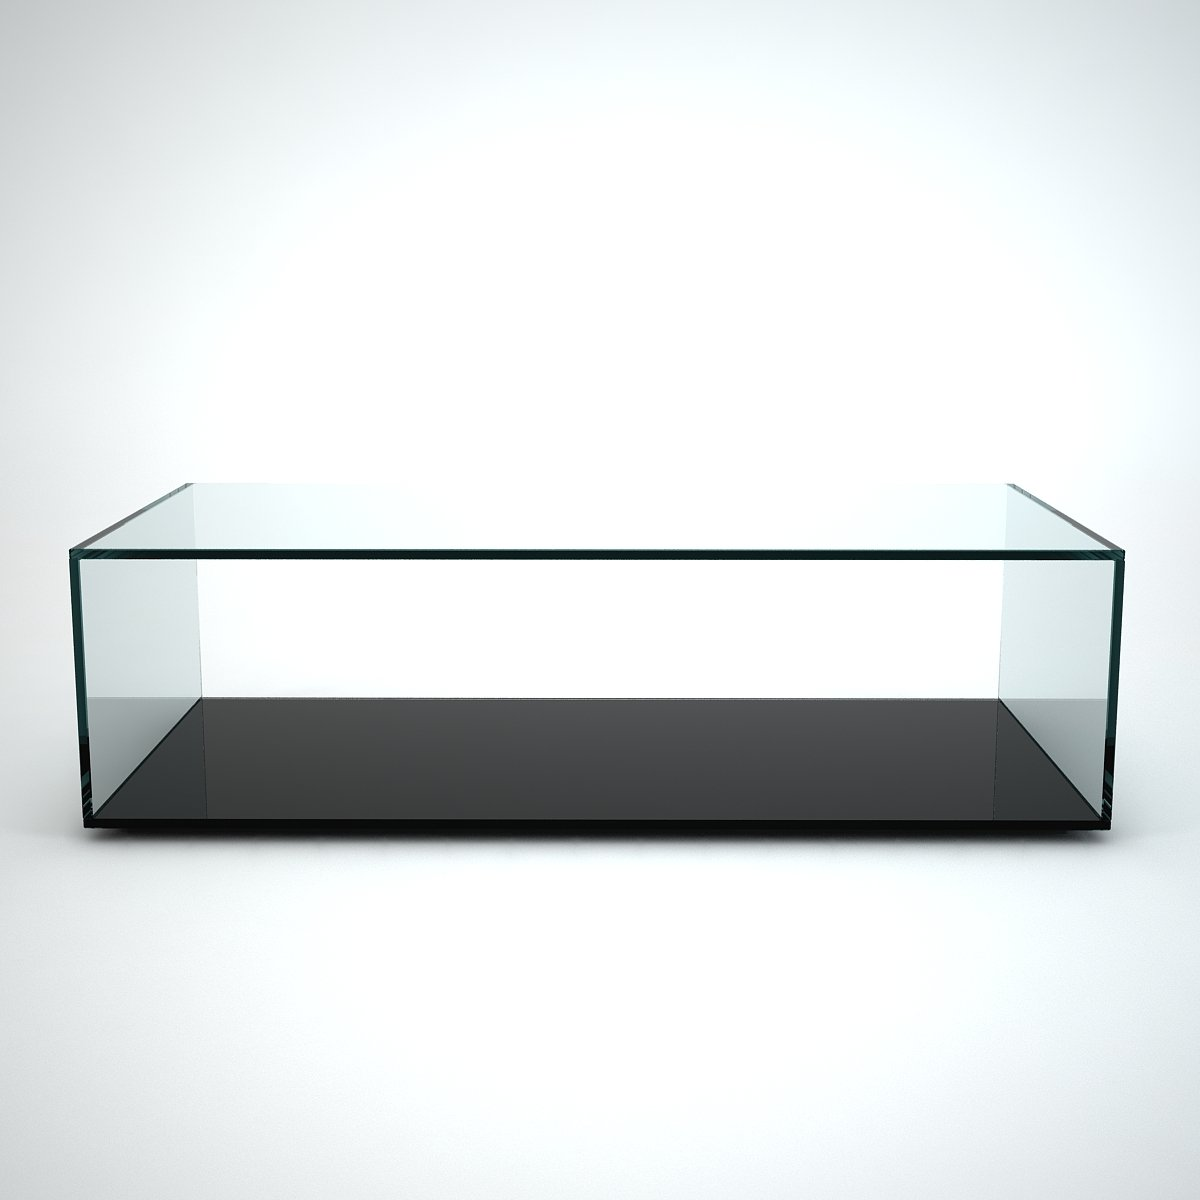 Quebec Rectangular Glass Coffee Table By Klarity